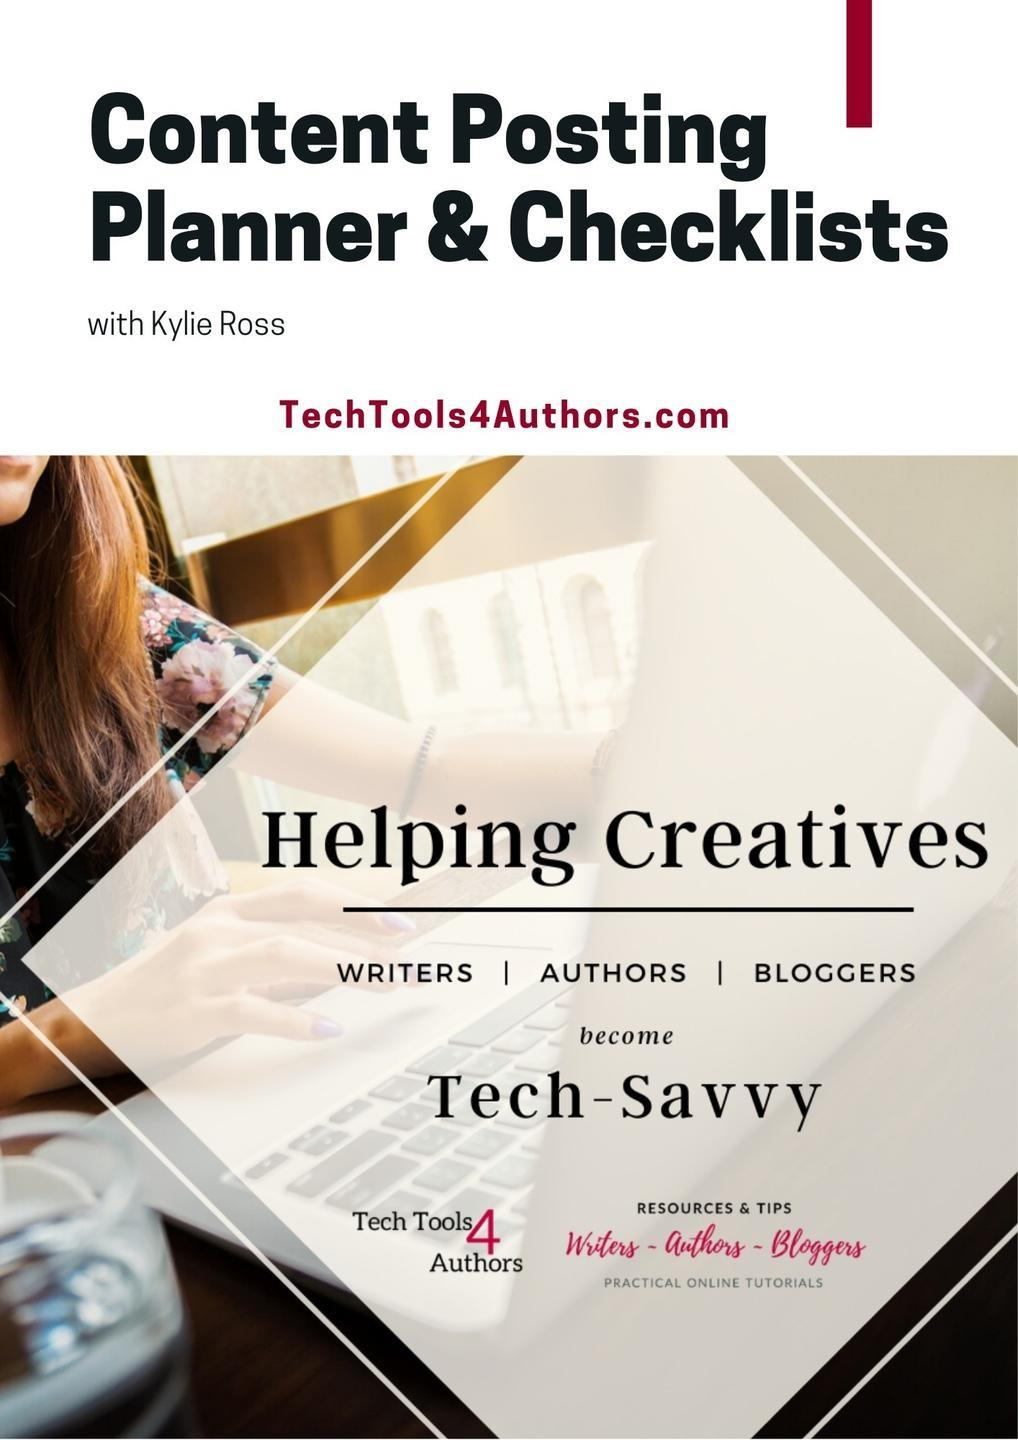 Content Posting Planner and Checklists